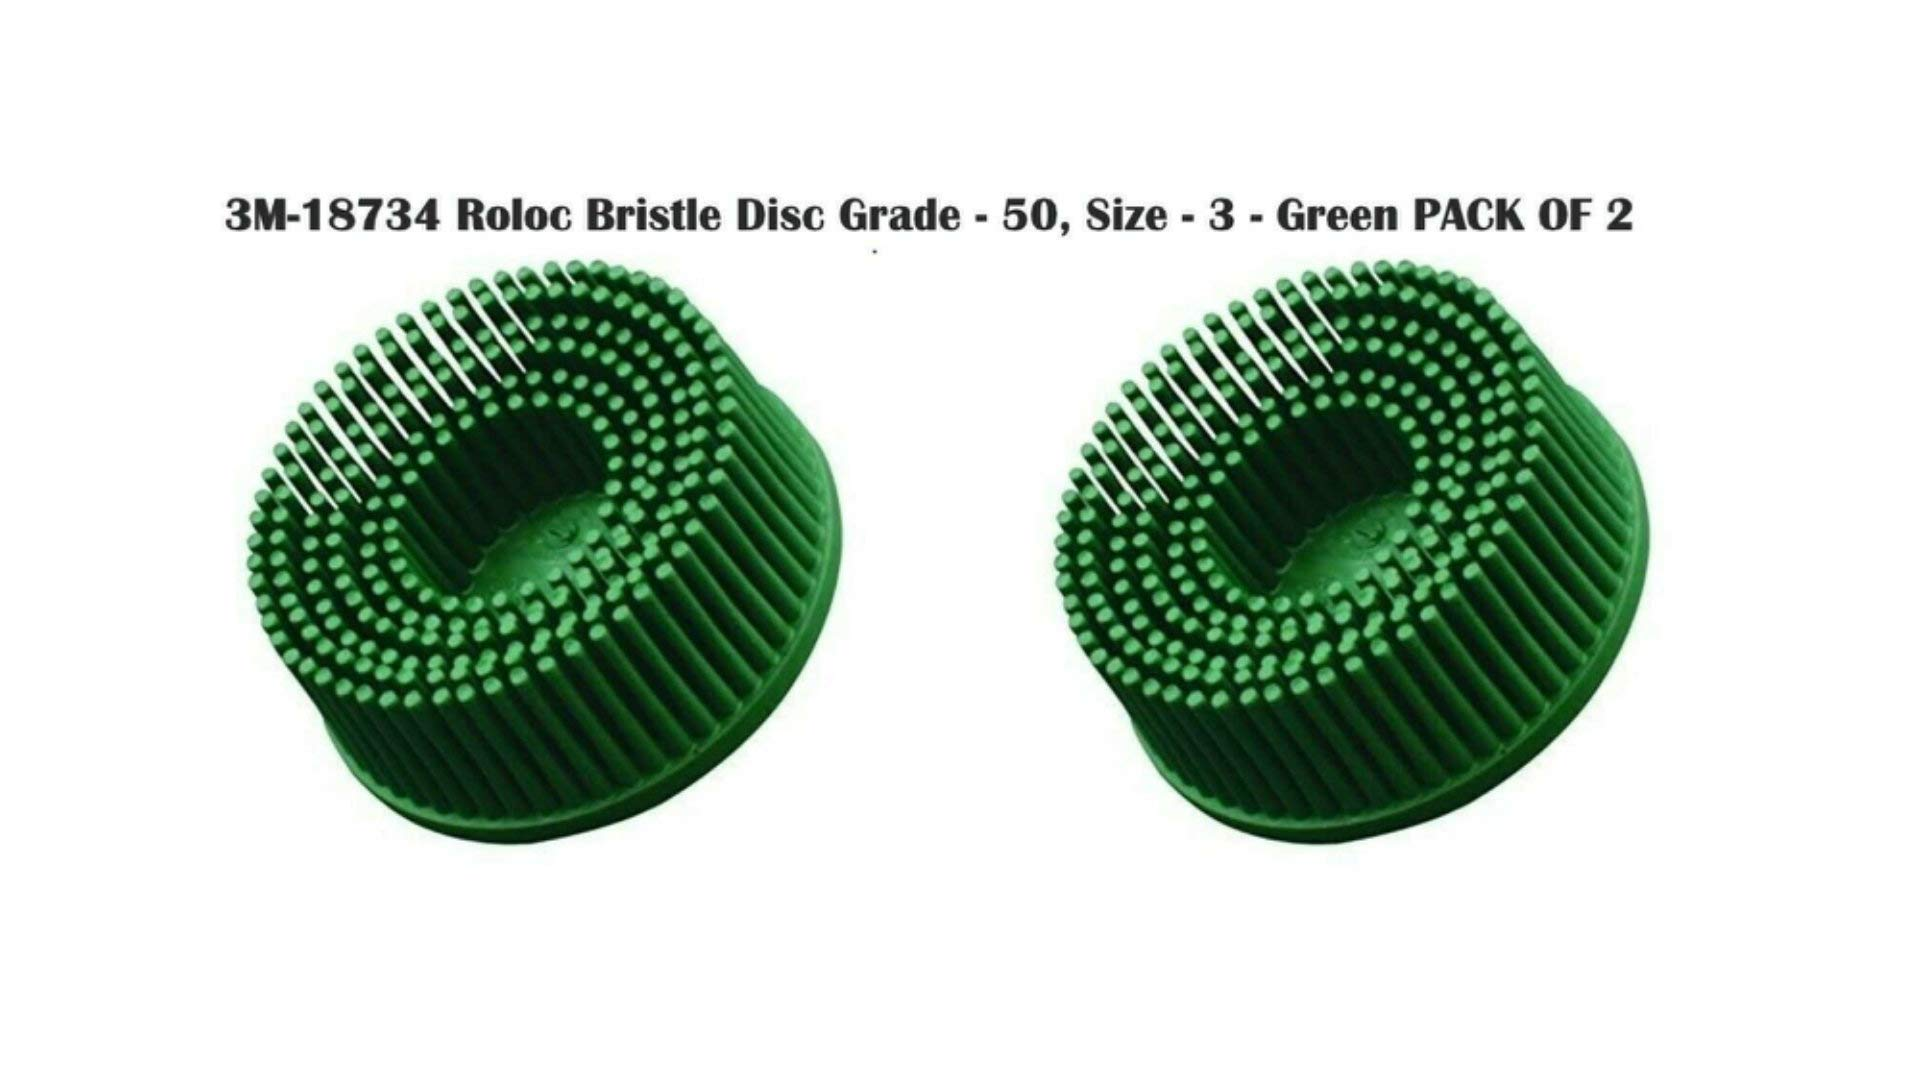 3M Roloc Bristle Disc Grade - 50, Size - 3 - Green Pack of 2